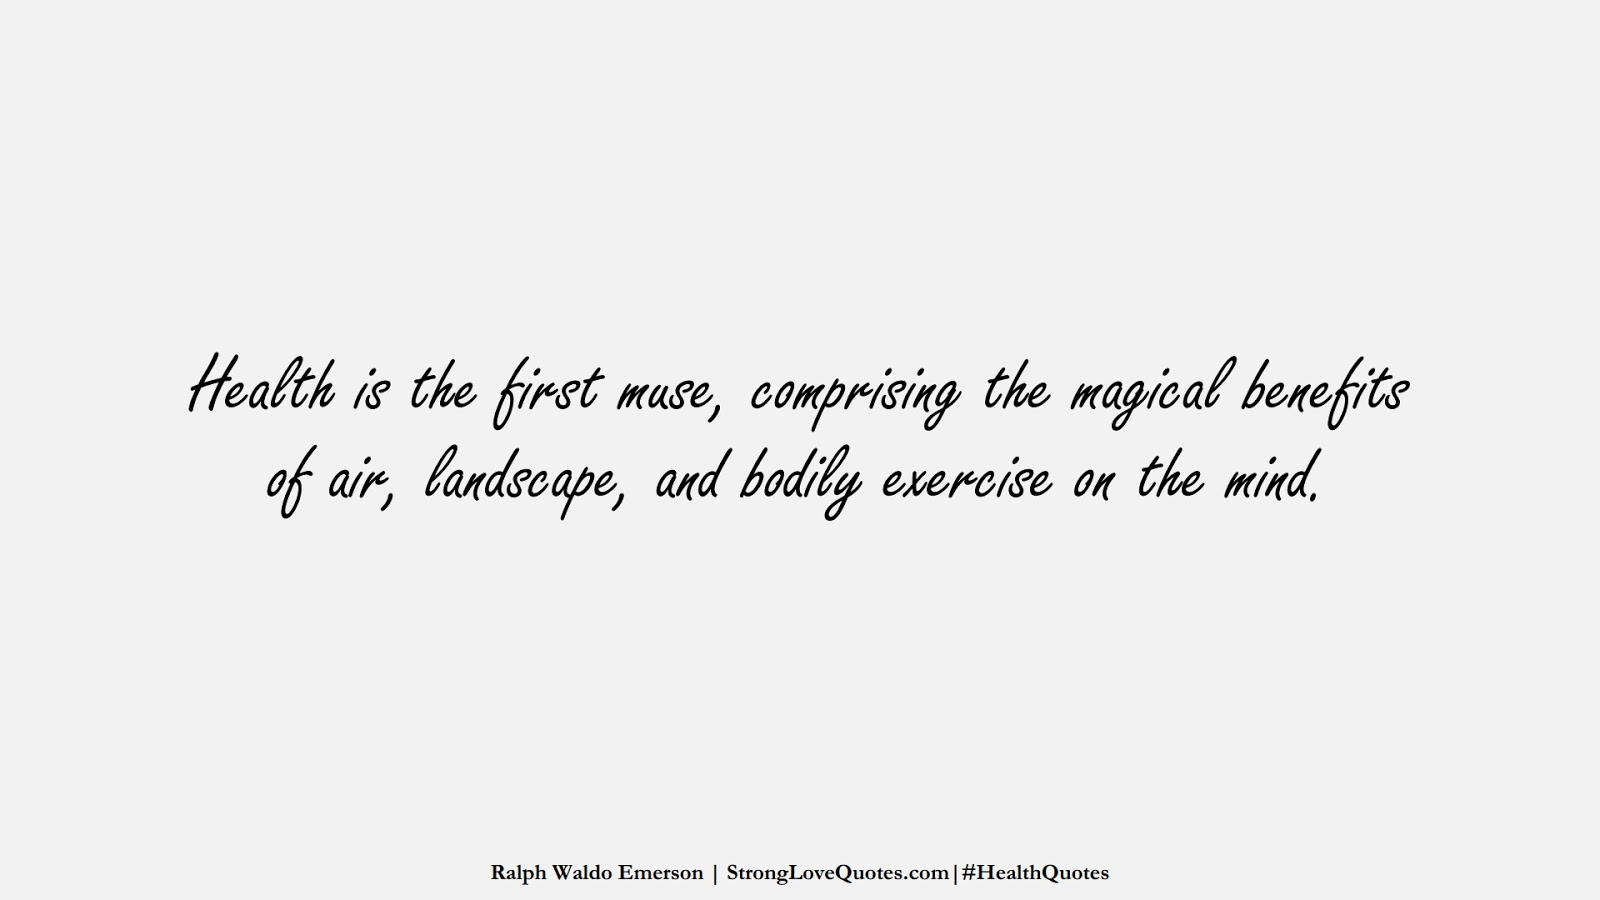 Health is the first muse, comprising the magical benefits of air, landscape, and bodily exercise on the mind. (Ralph Waldo Emerson);  #HealthQuotes